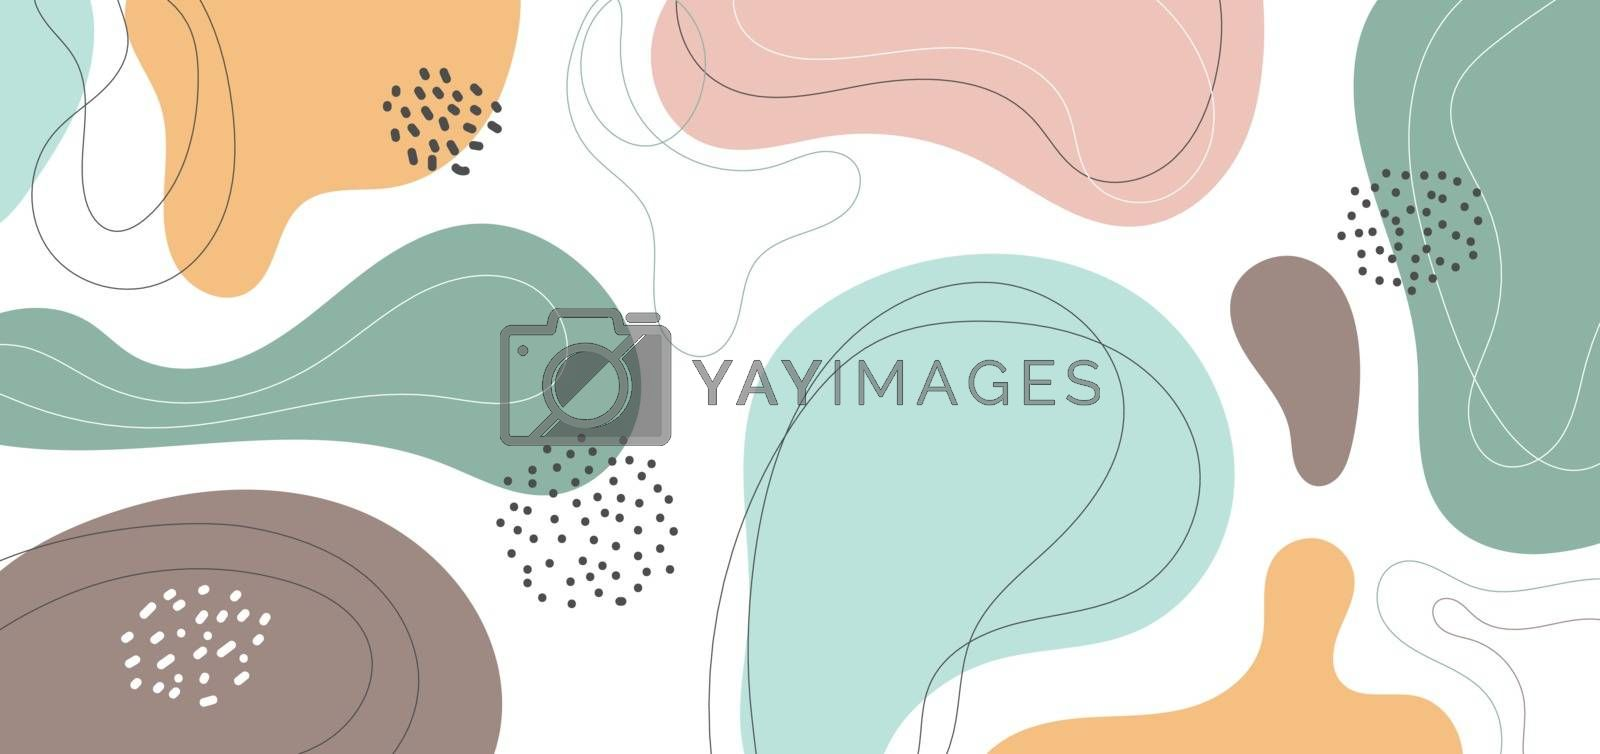 Banner web design template abstract minimal organic shapes composition pastel color background in trendy contemporary collage style. Vector illustration